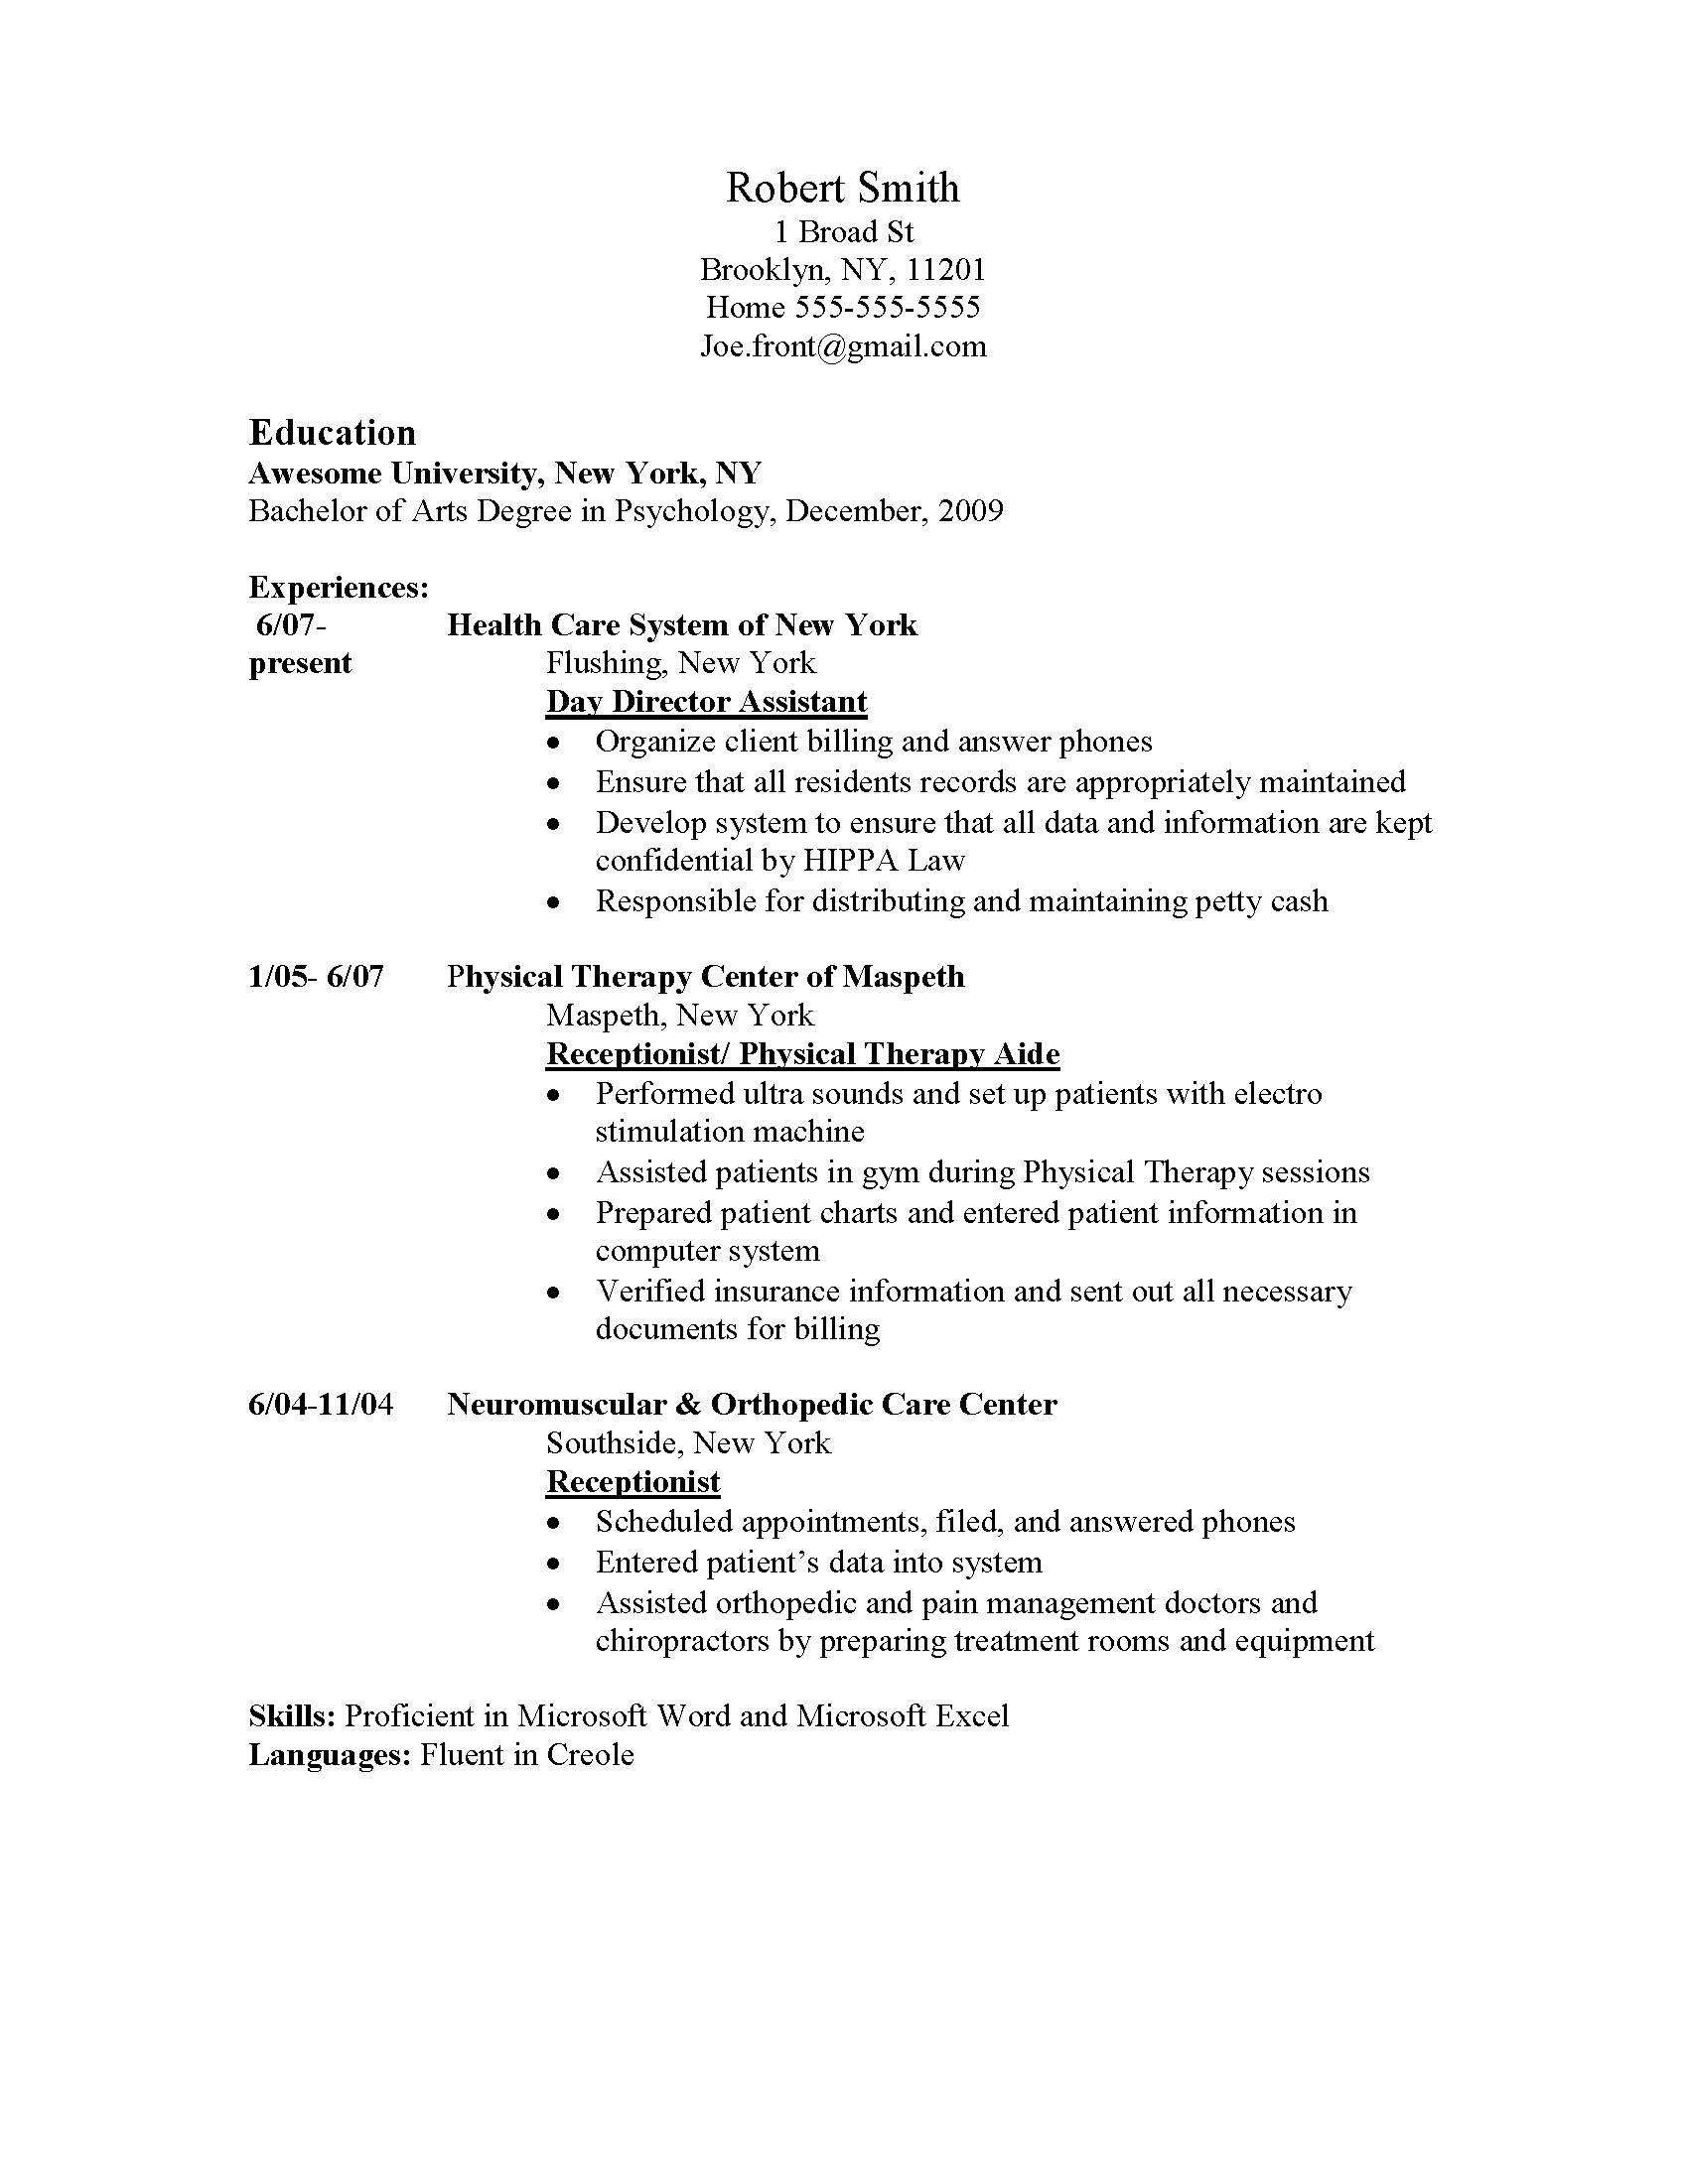 n dentist resume samples resume samples for nurses in clasifiedad com resume samples for nurses in clasifiedad com